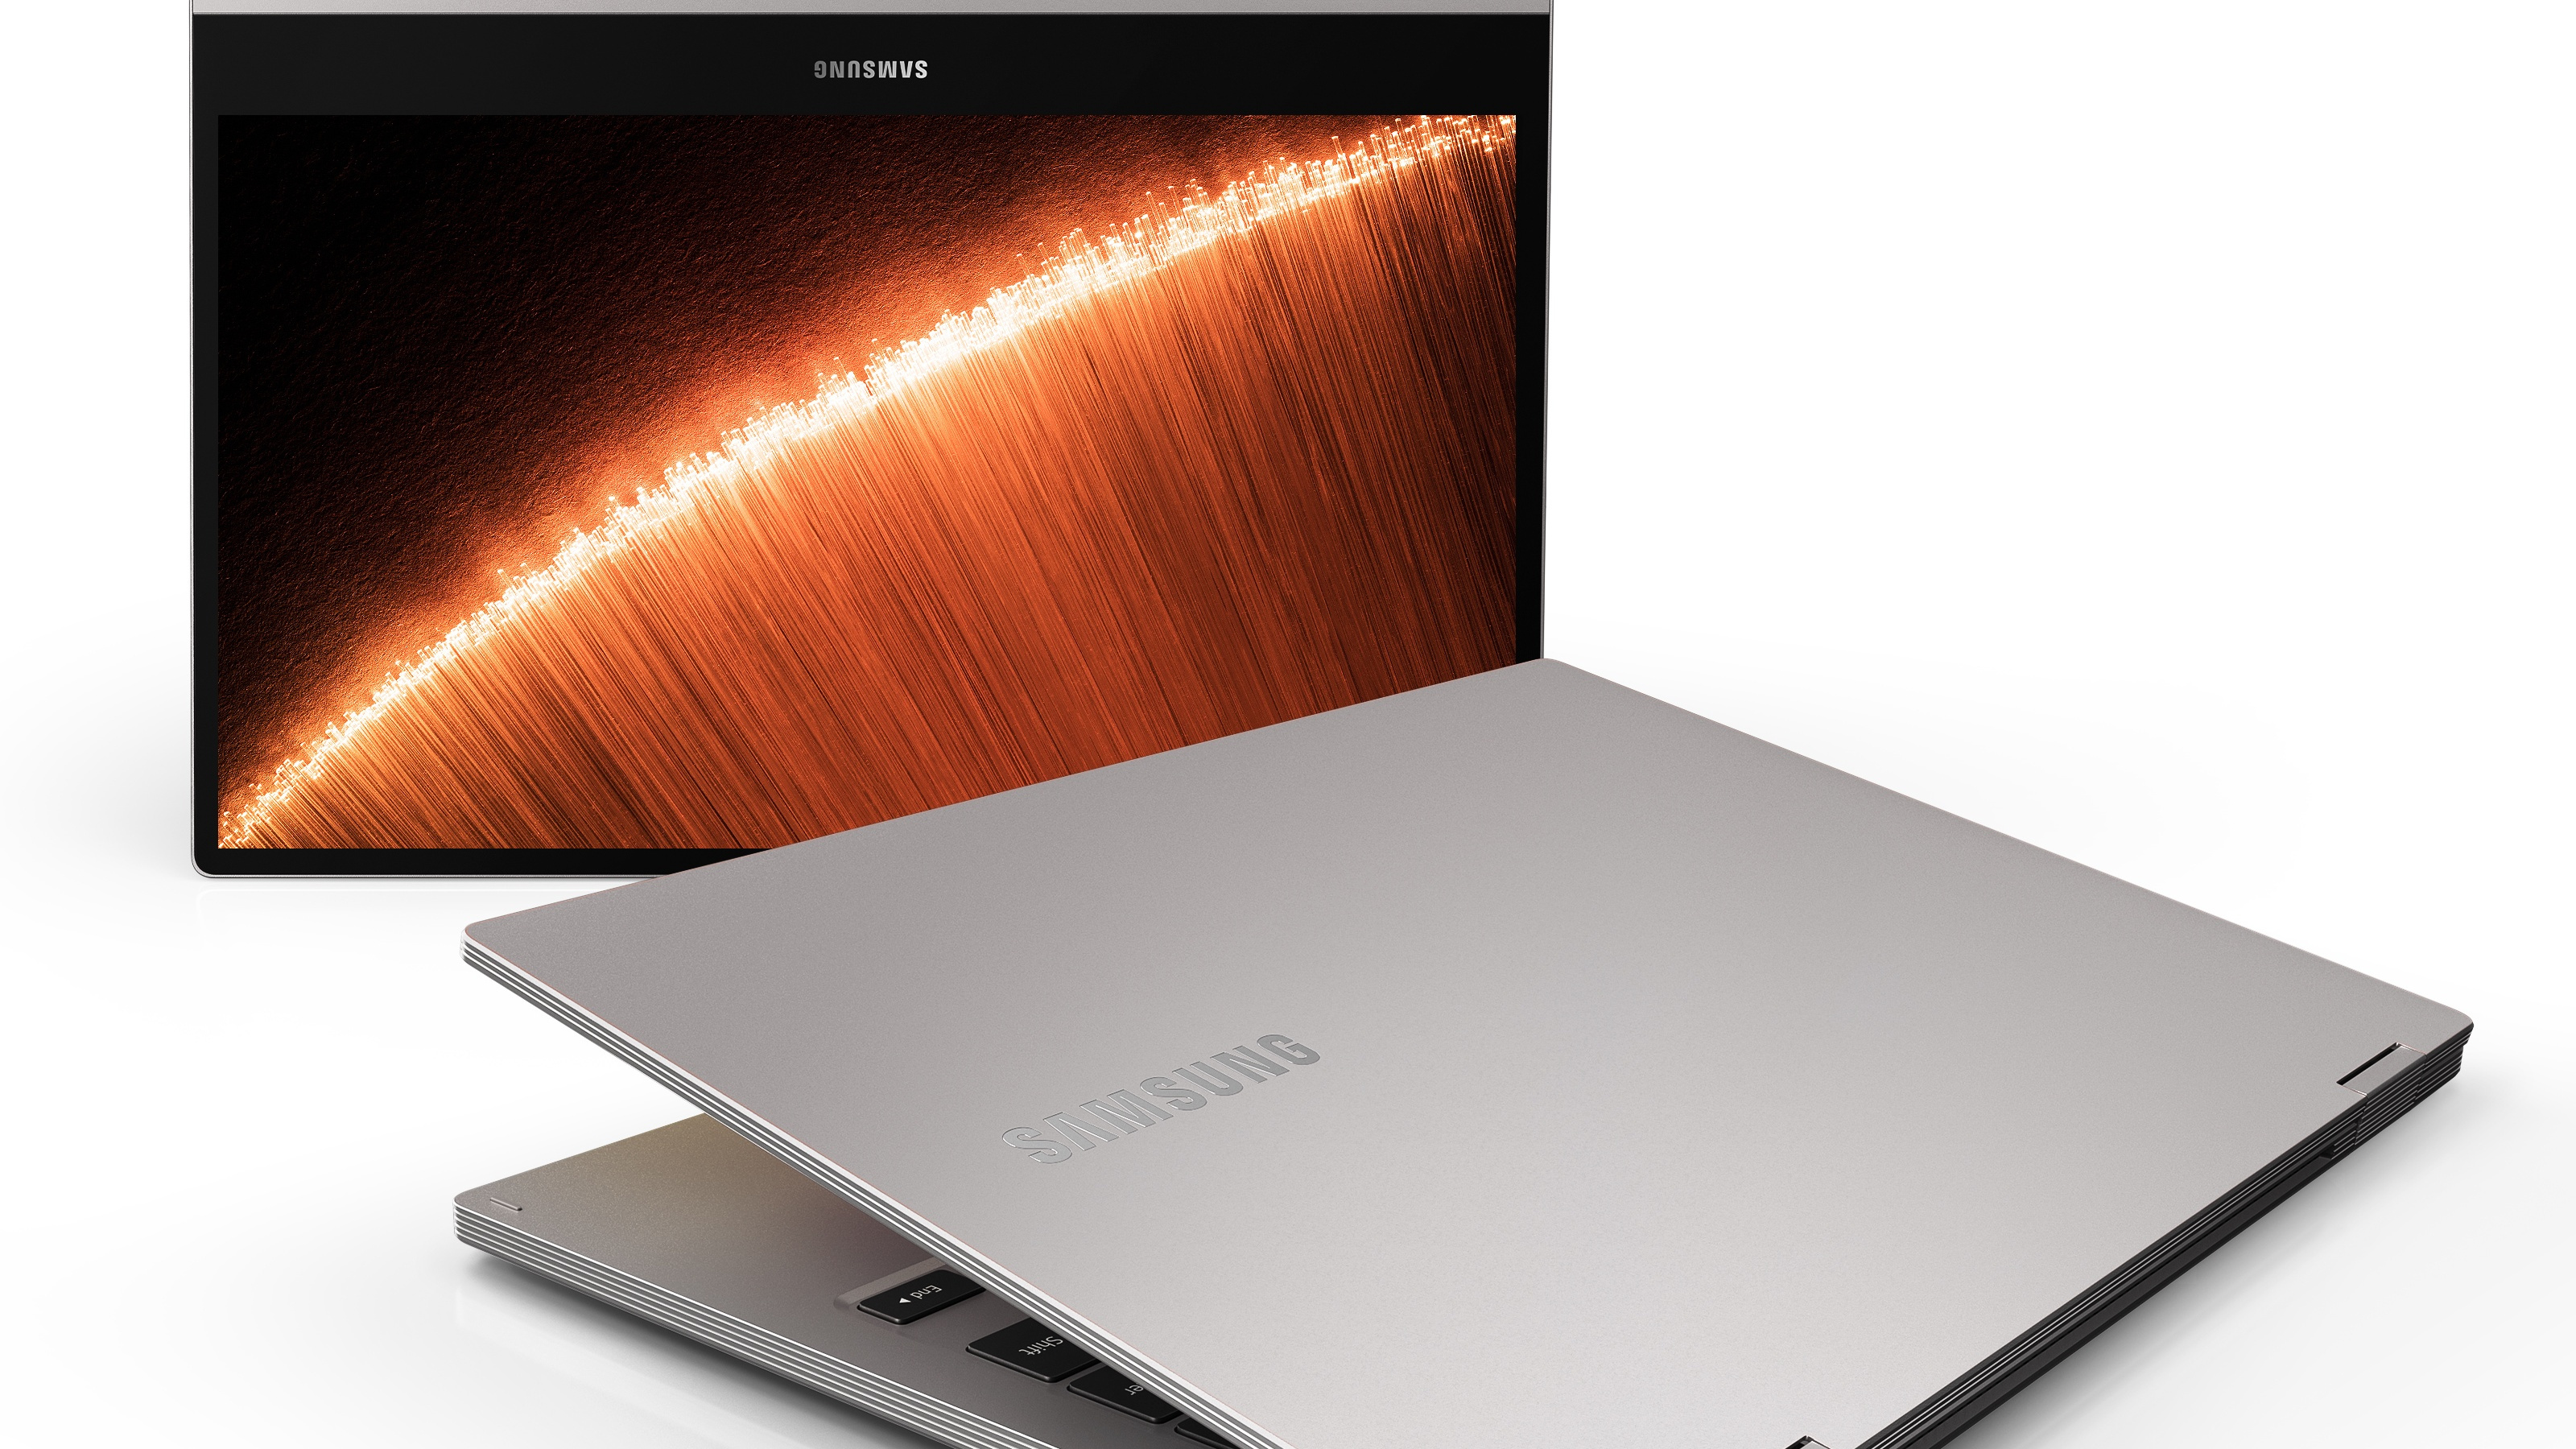 Samsung Notebook 9: Samsung's most up to date Notebook 9 laptops launch on March 17th, starting at $1,099.99